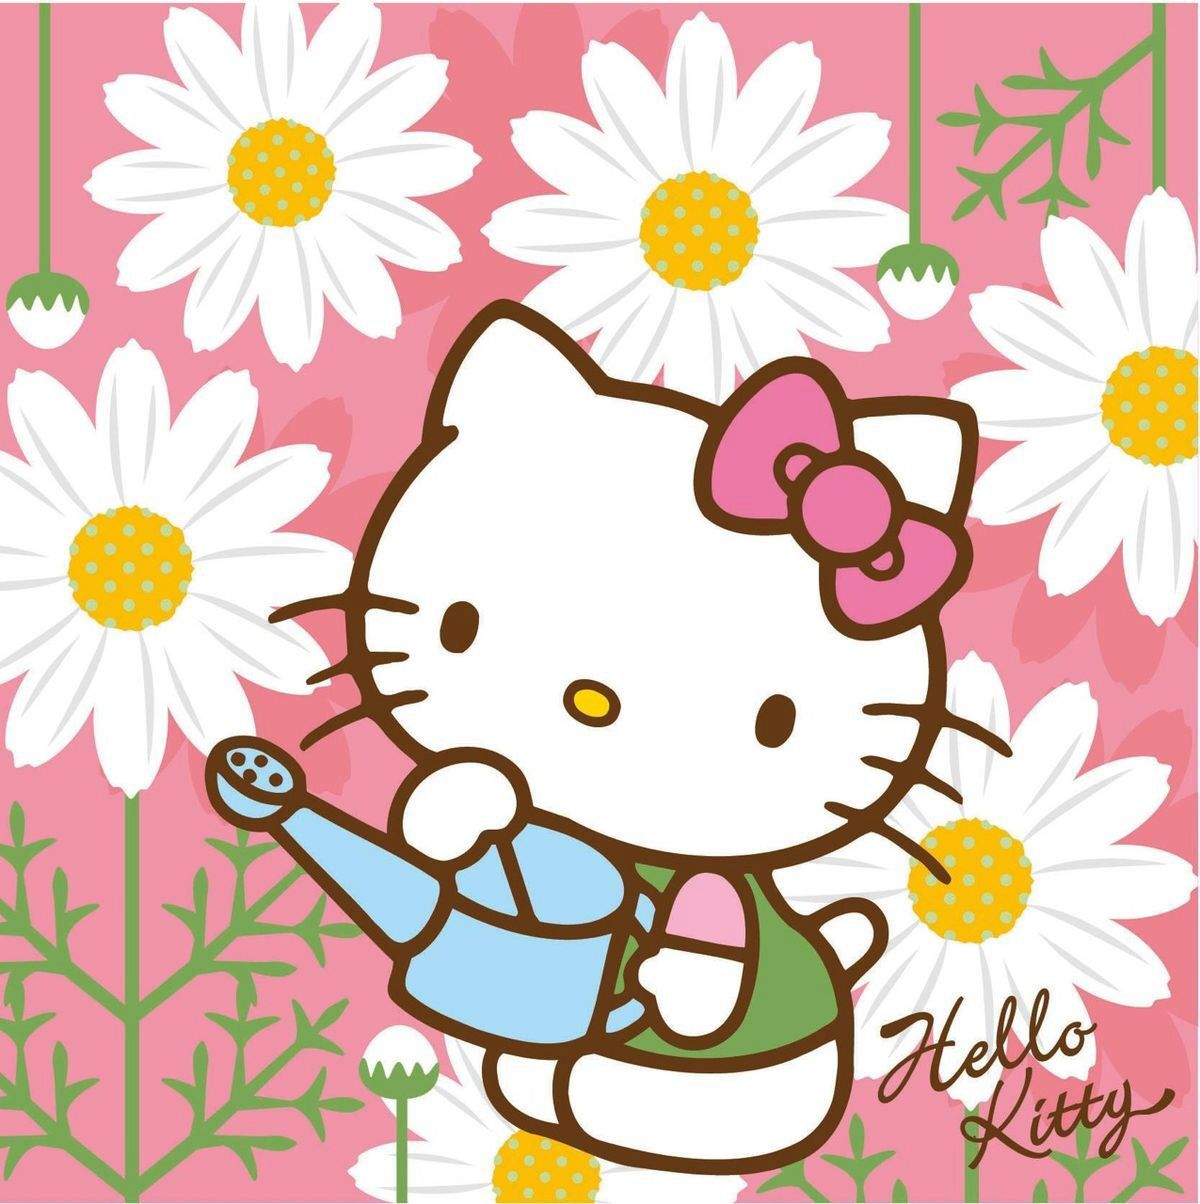 Amazing Wallpaper Hello Kitty Painting - 764403683533d4cd032f3026199187e7  Pictures_285093.jpg